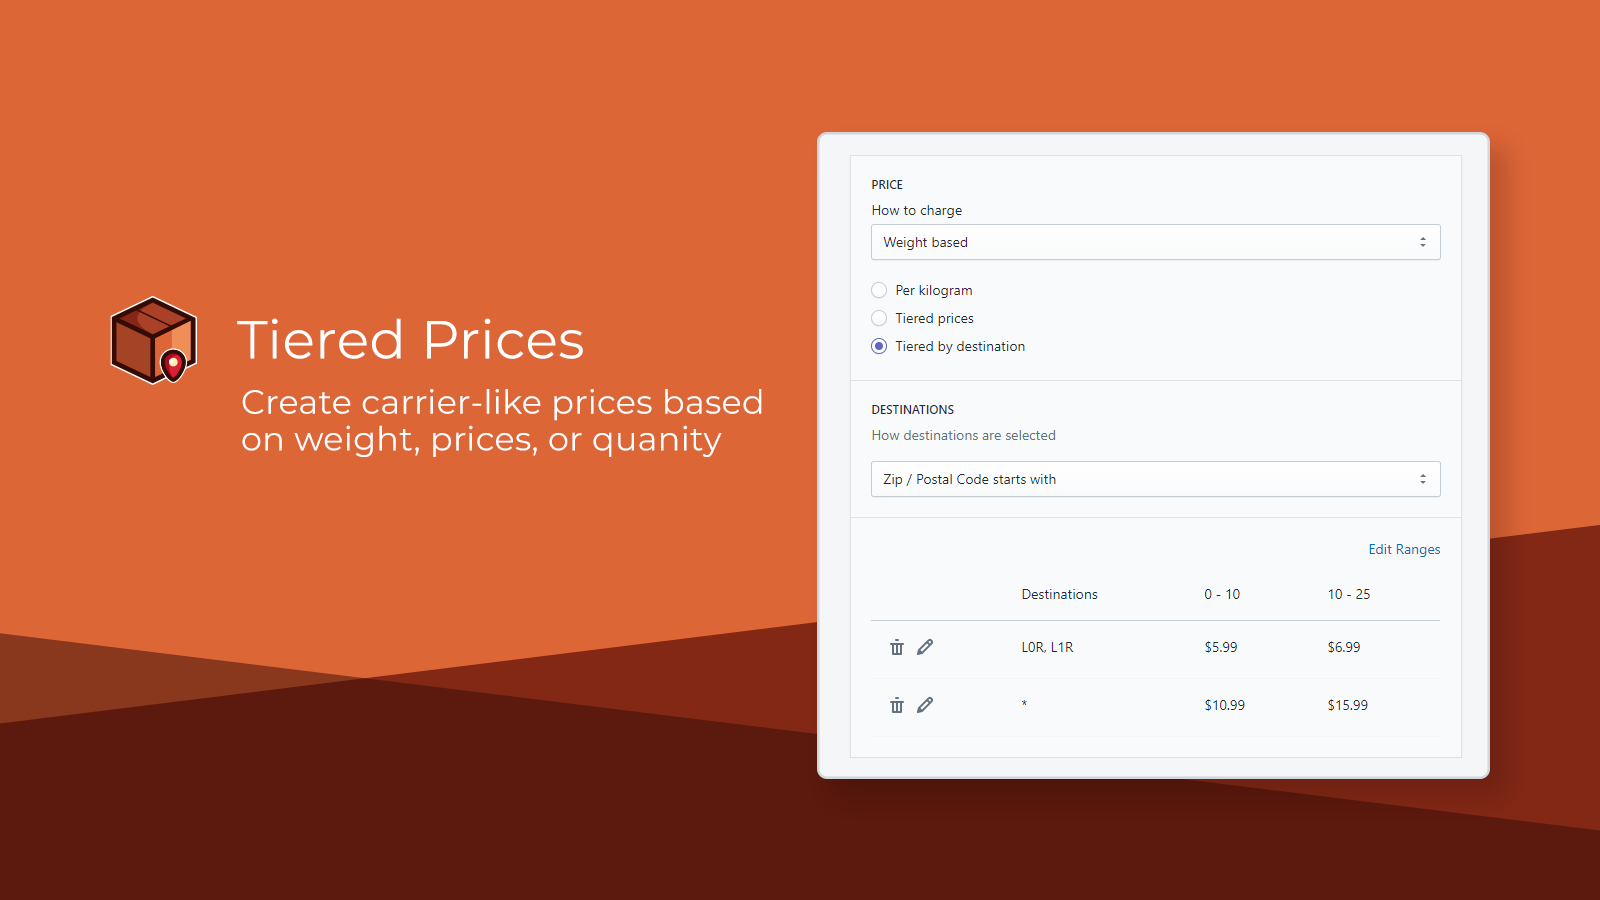 Tiered Prices